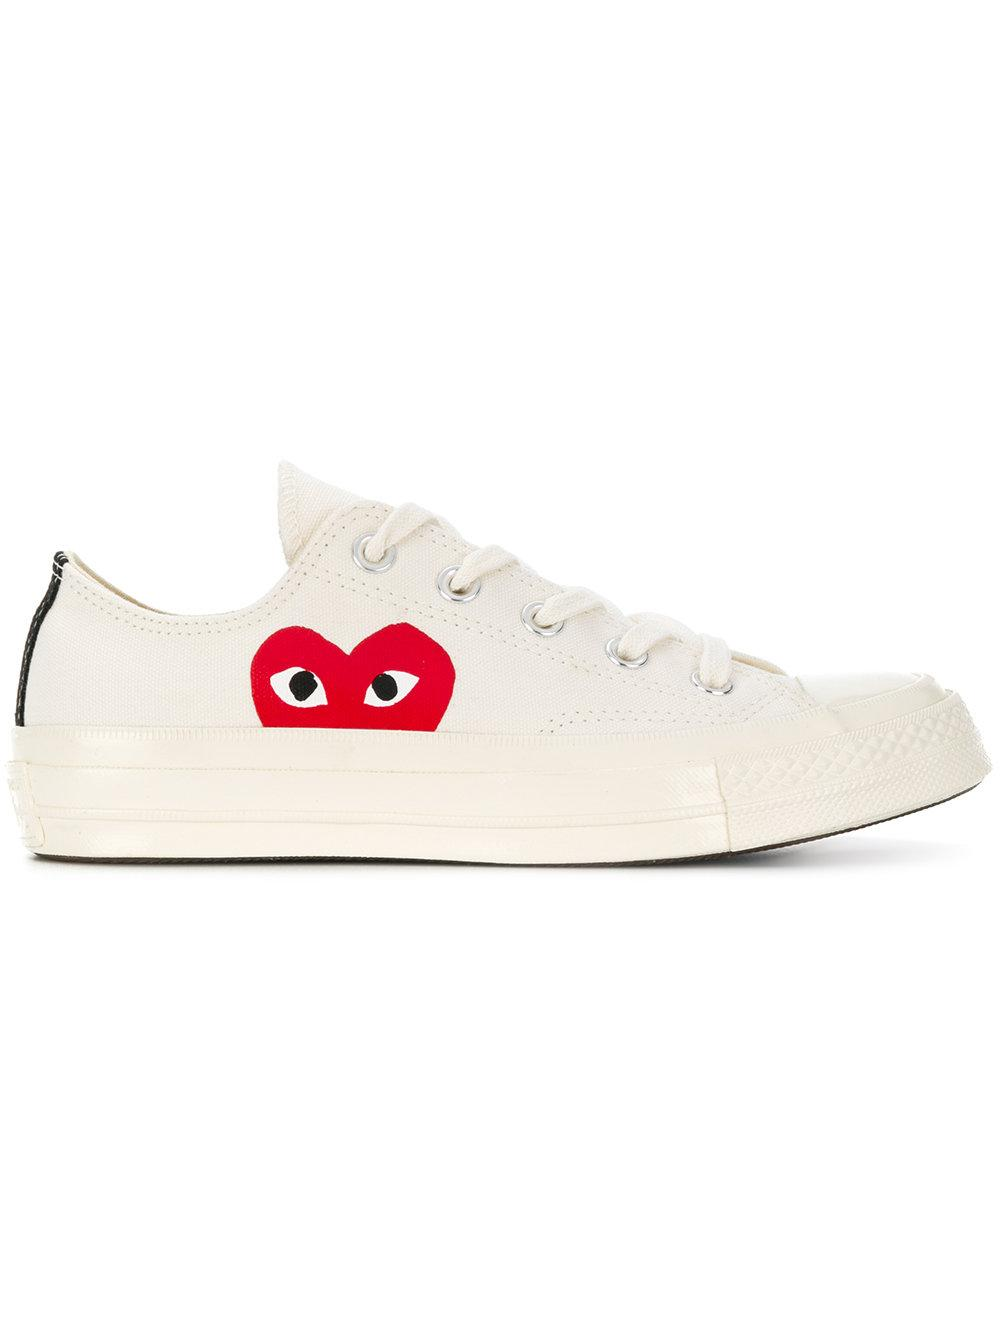 c0631814e203 Converse Comme Des GarçOns Play X Heart Printed Flat Sneakers In Neutrals